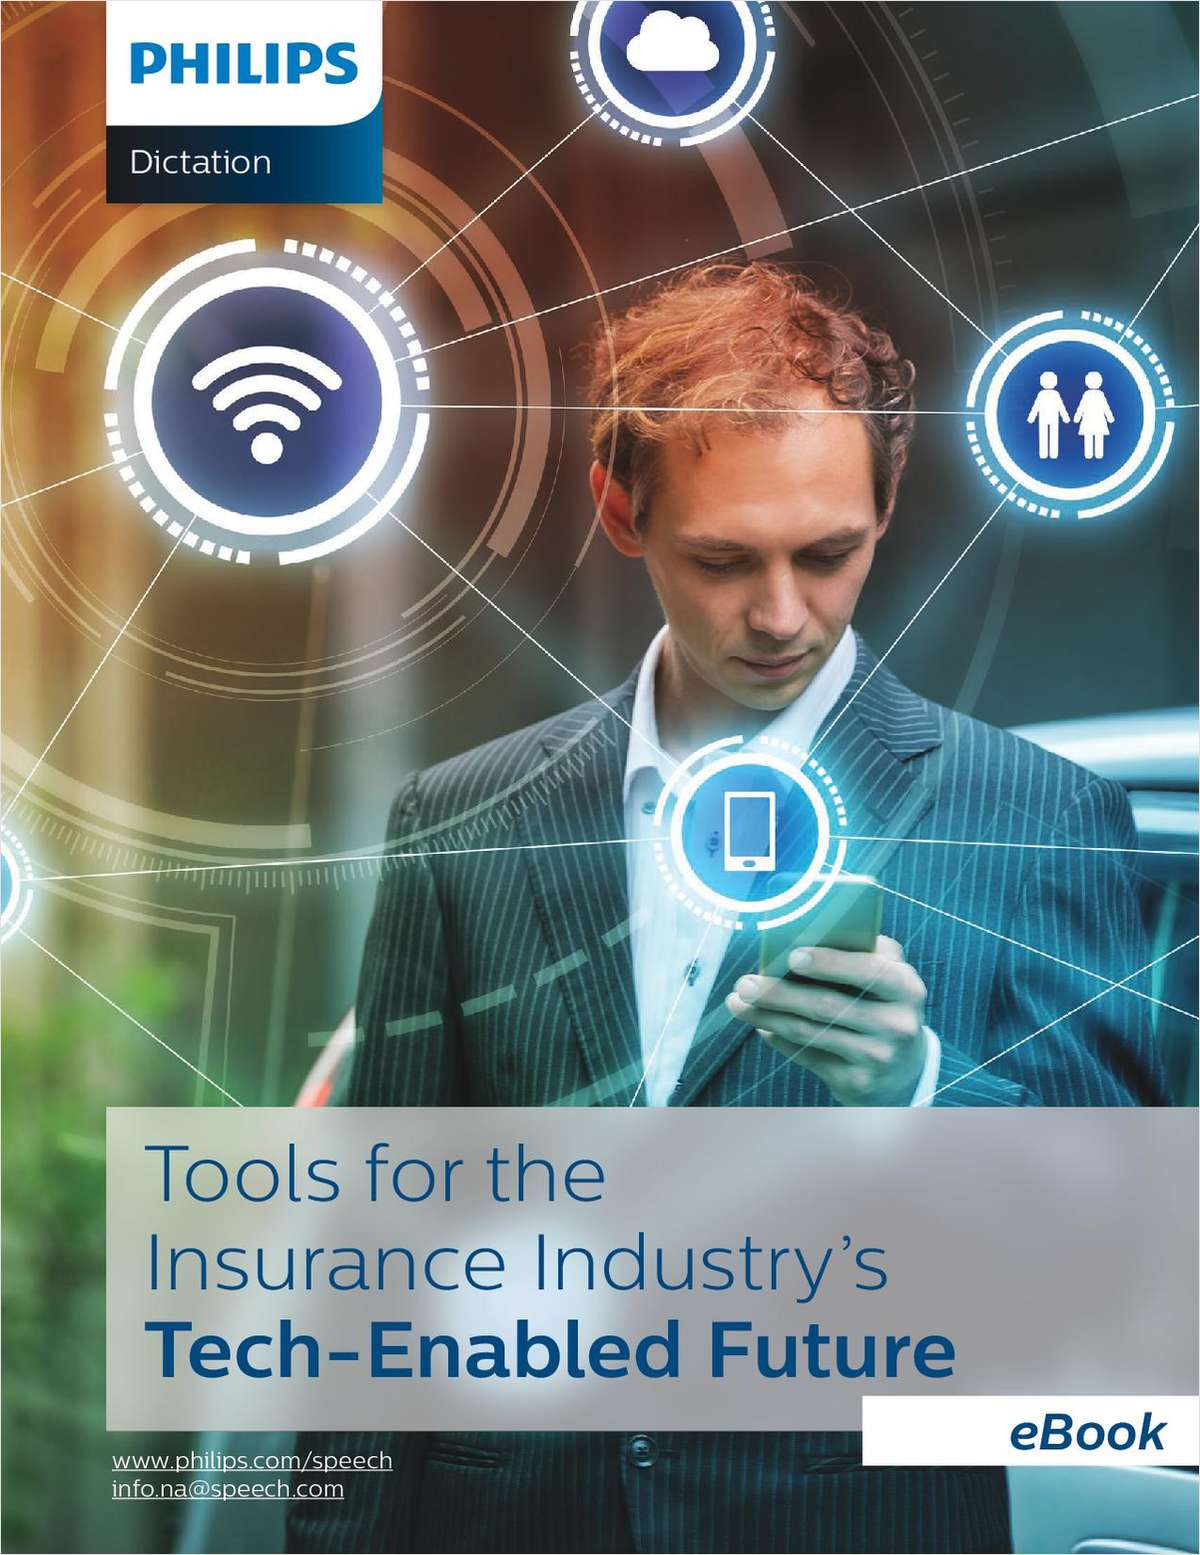 Tools for the Insurance Industry's Tech-Enabled Future